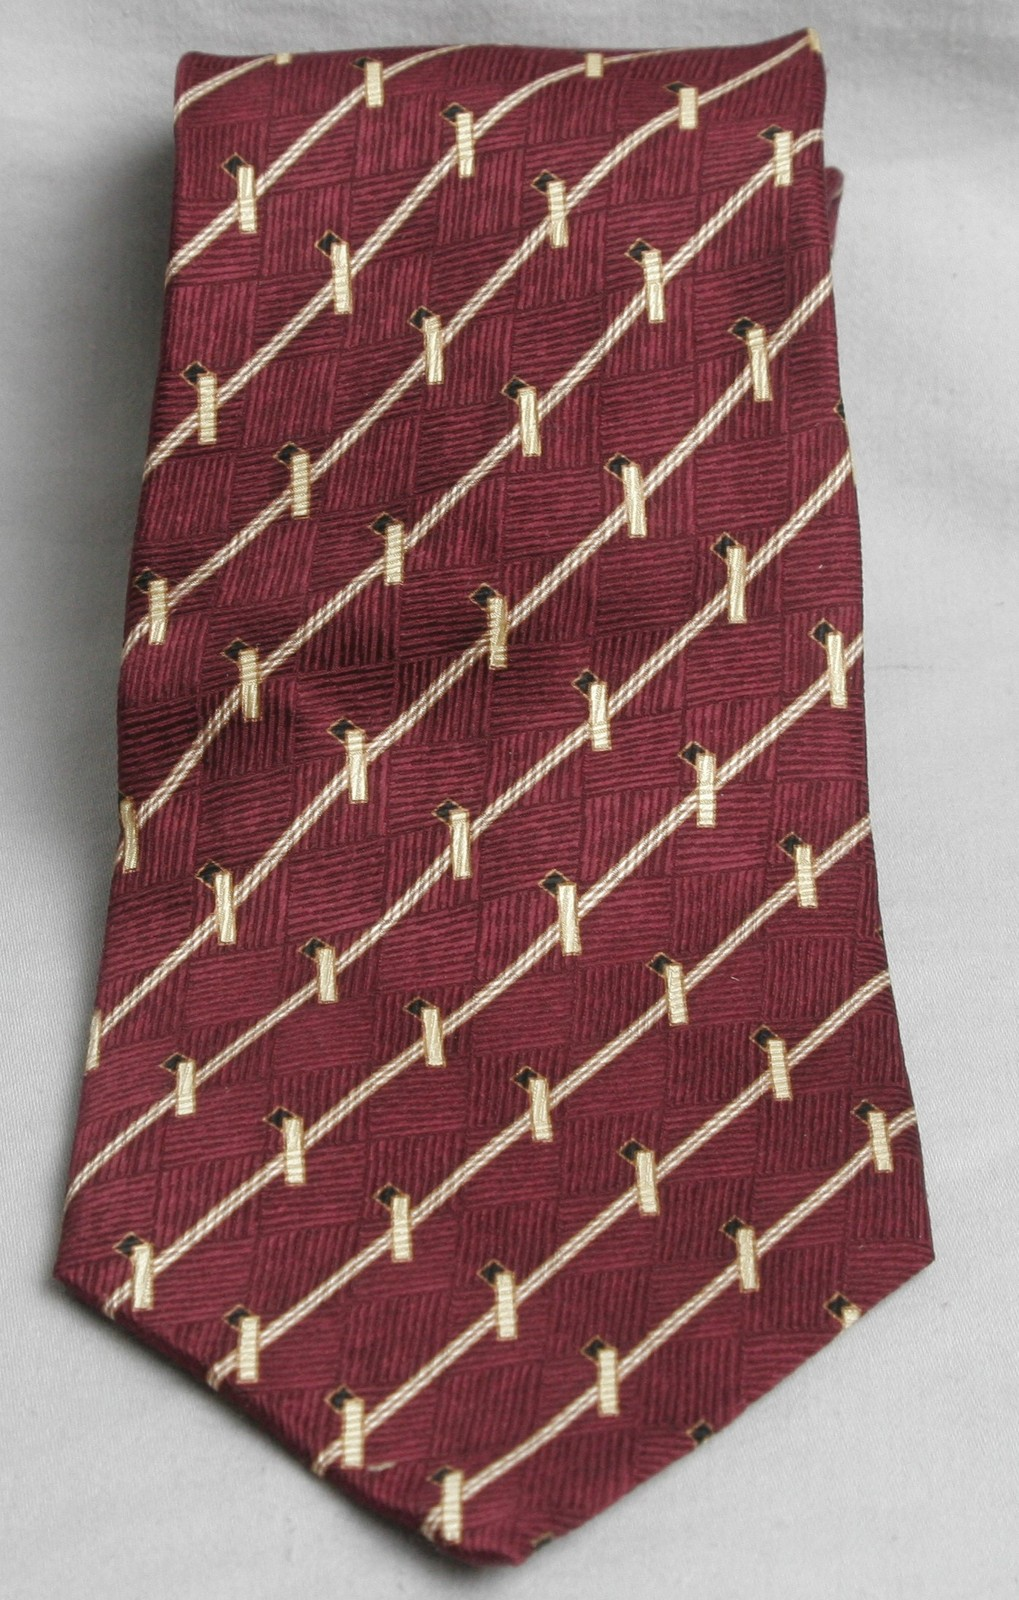 Primary image for Bill Blass Neo BURGANDY GOLD STRIPED Tie Necktie 4""